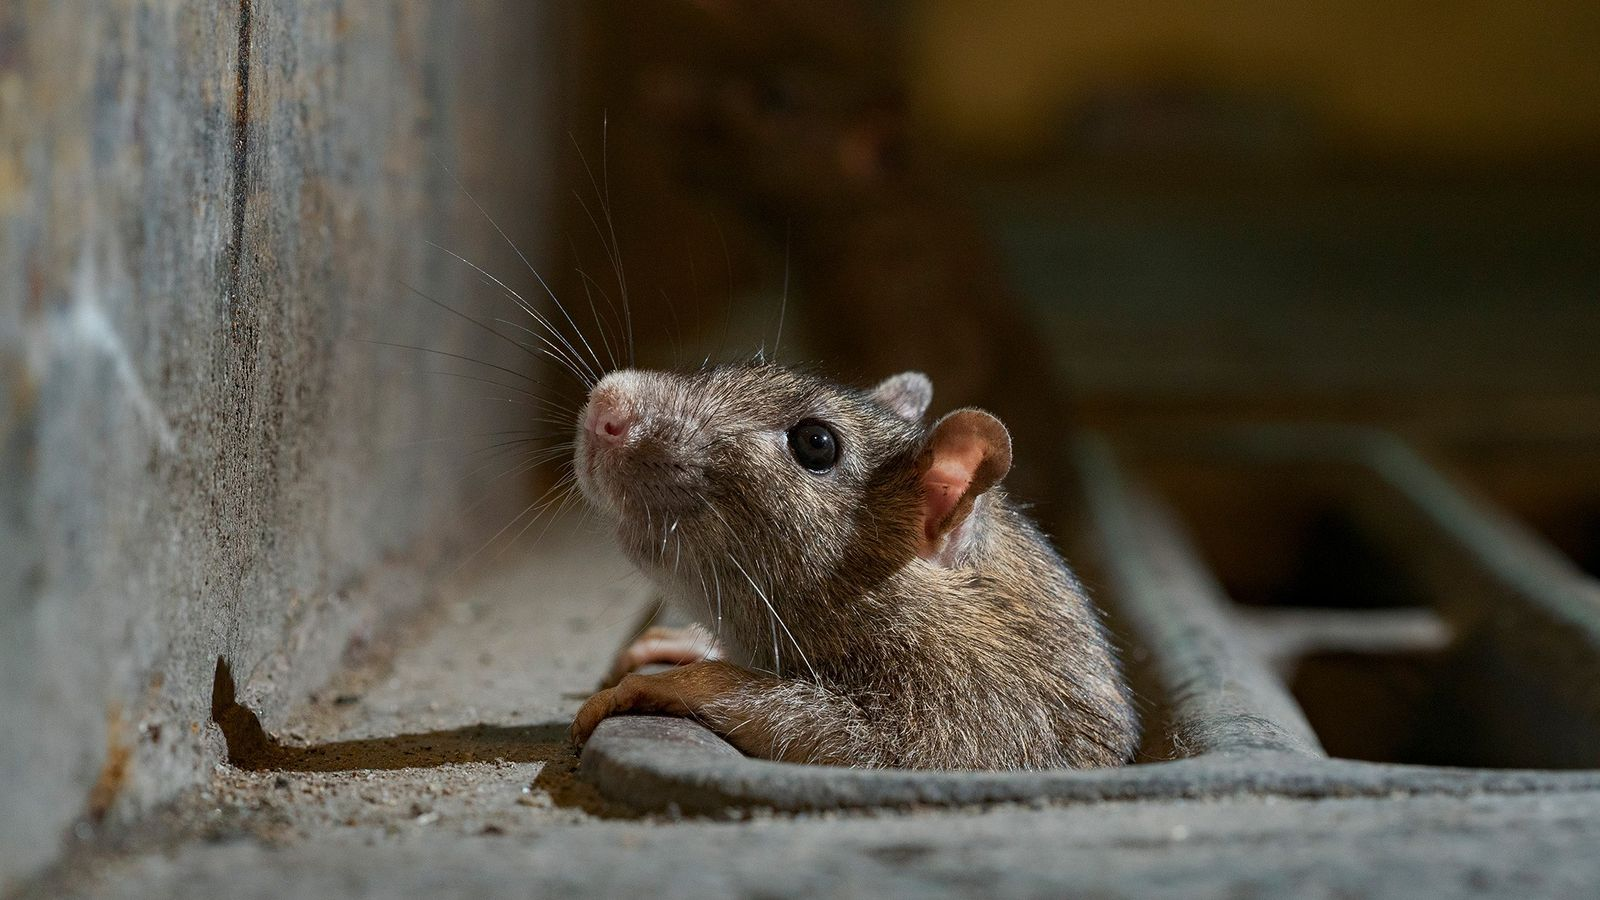 A rat peeks out from a stormwater catch basin in New York City. As self-isolation becomes ...